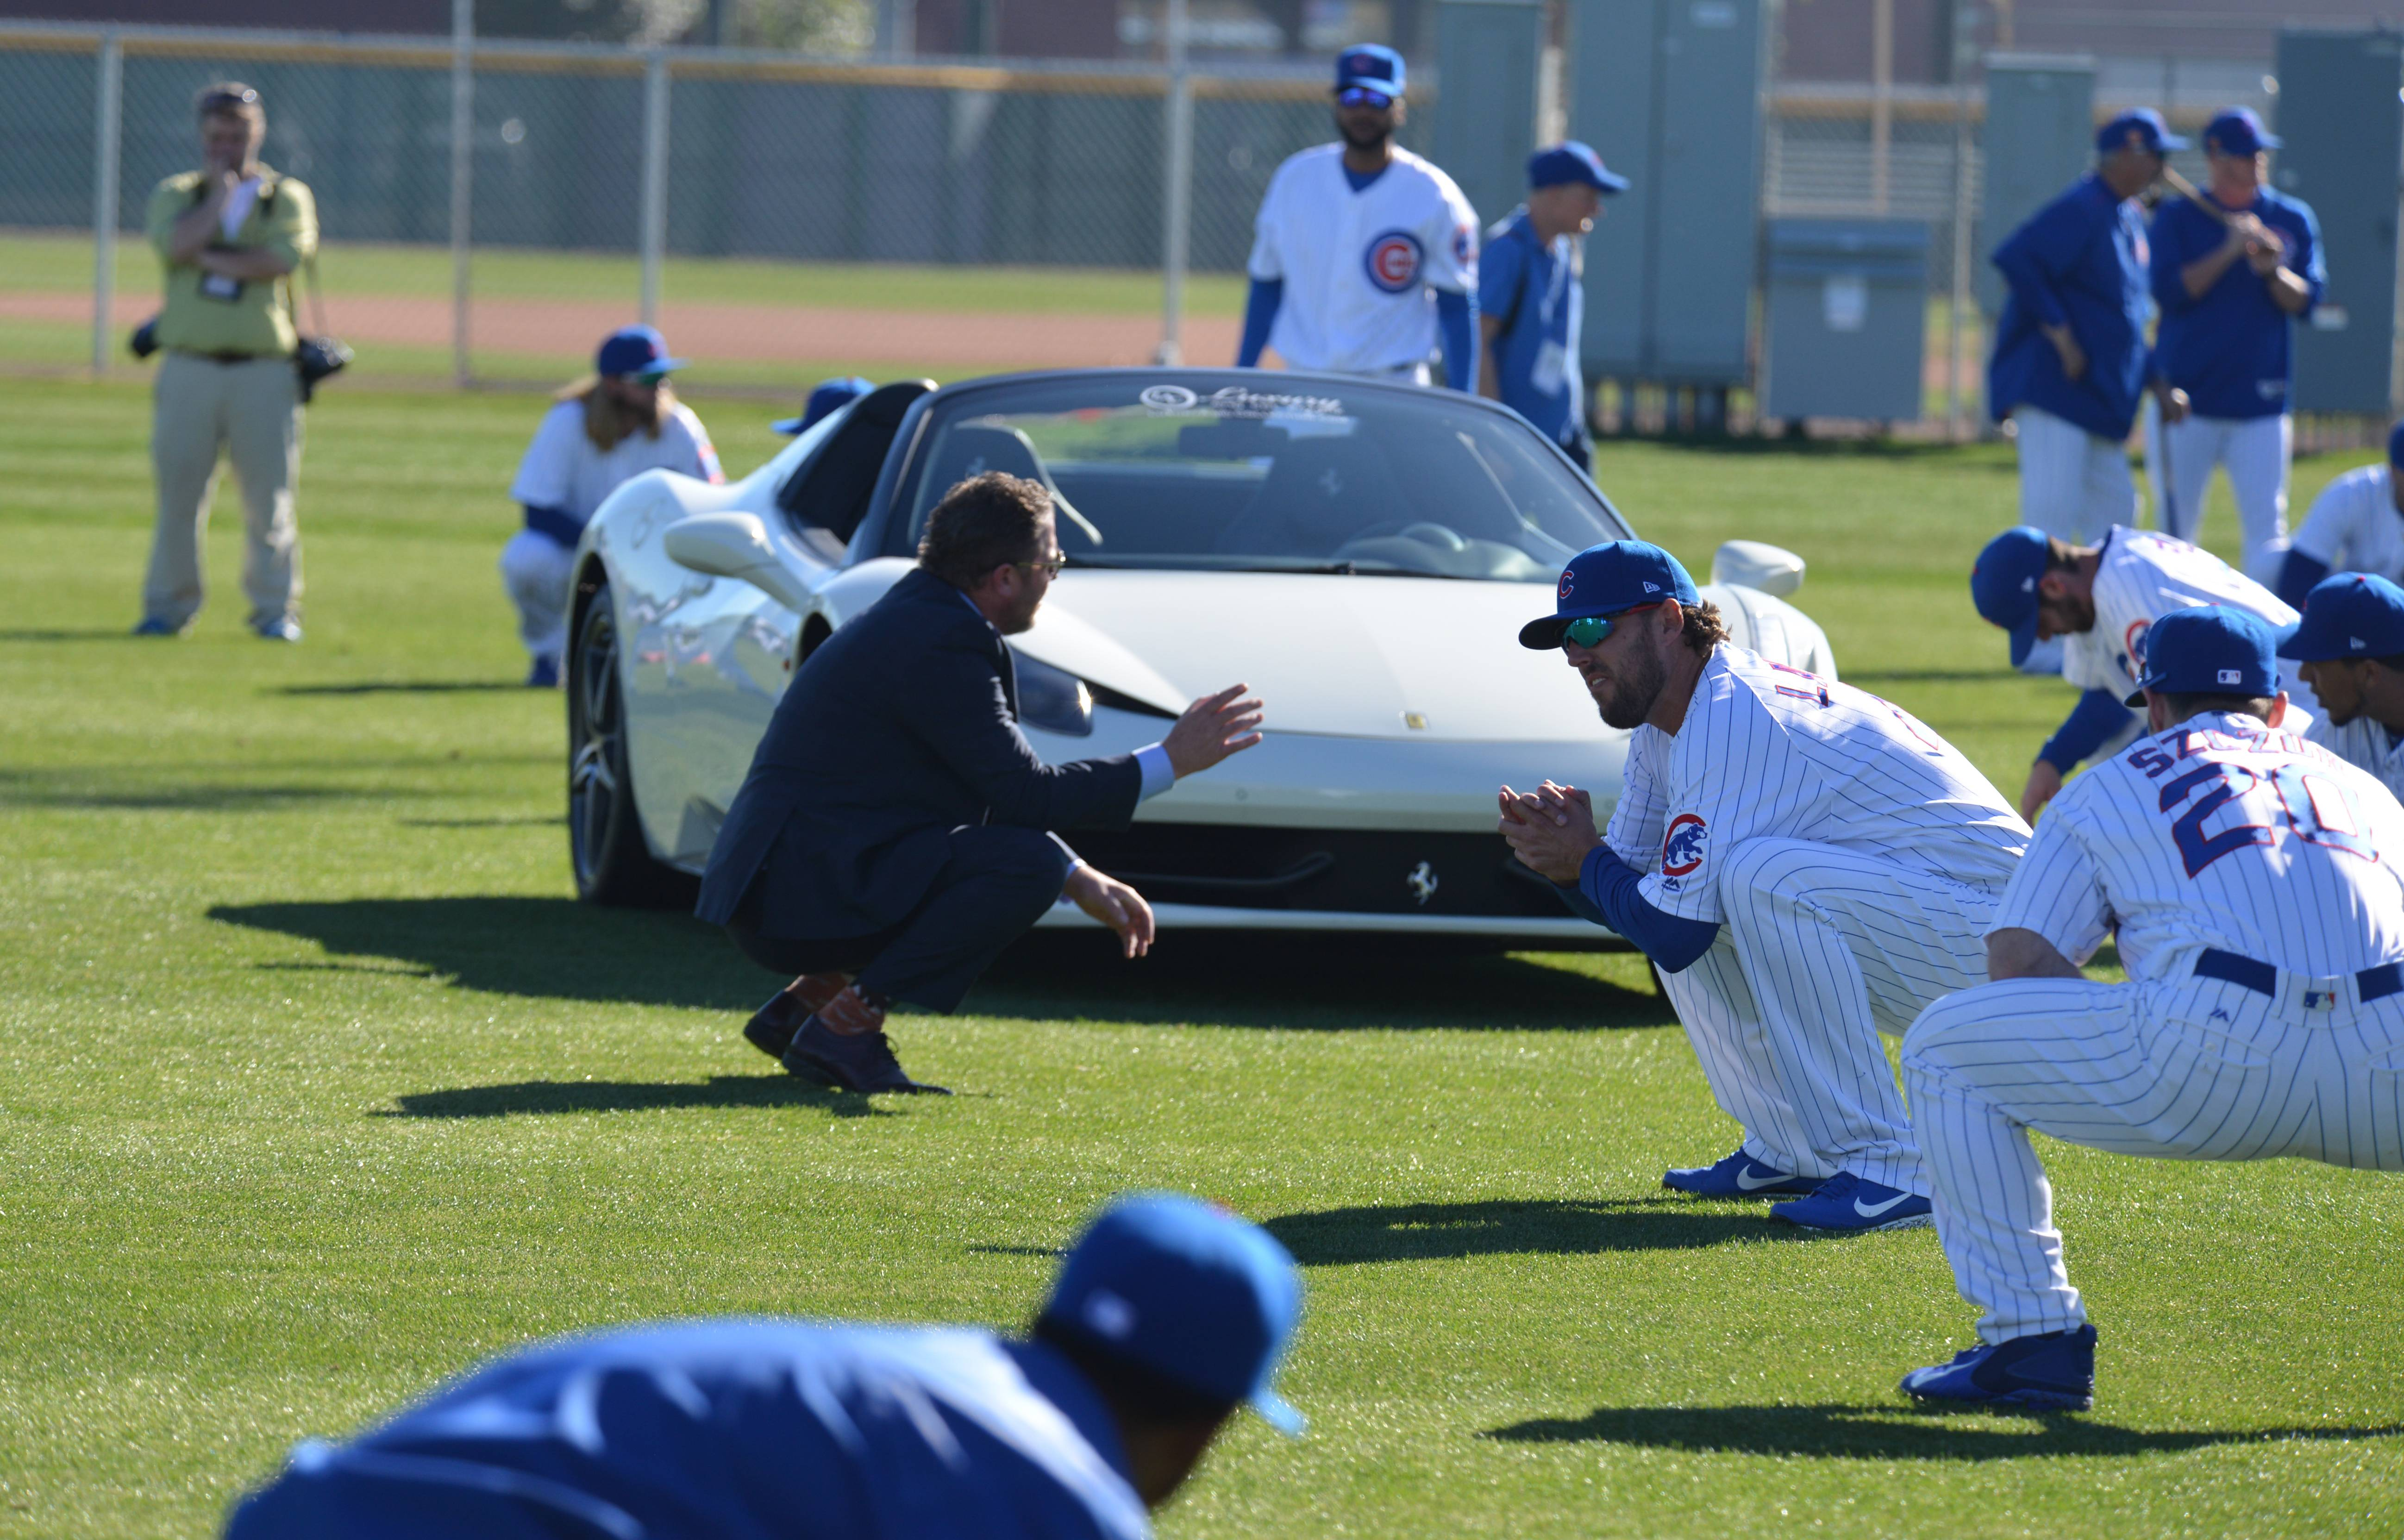 Tim Buss leads the Chicago Cubs in a workout wearing a suit that he wore while driving this Ferrari into camp.